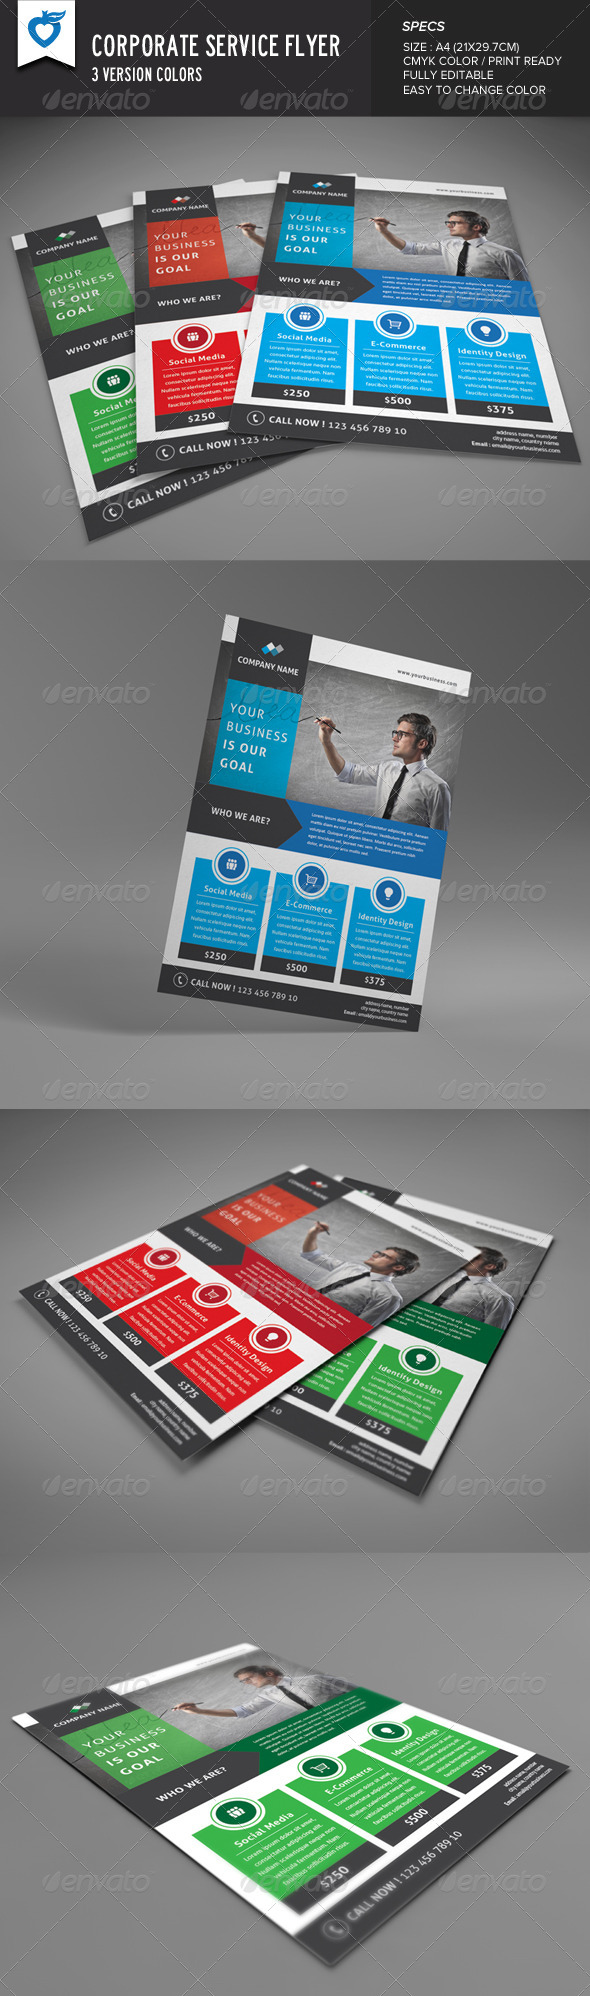 GraphicRiver Corporate Service Flyer 8387102